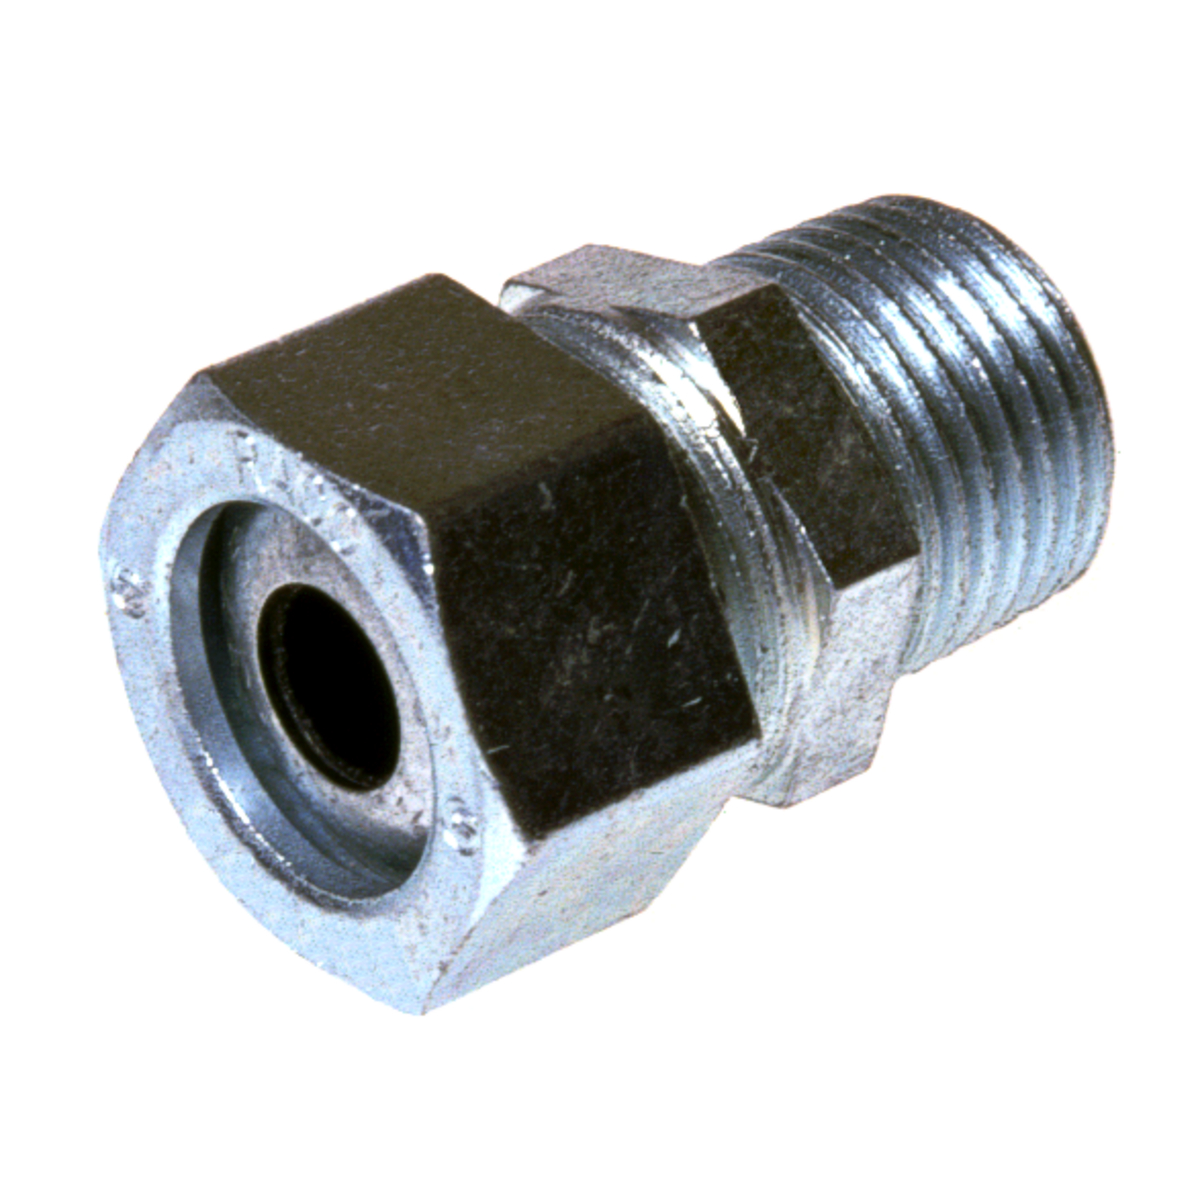 Hubbell-Raco 3703-6 Cord Connector